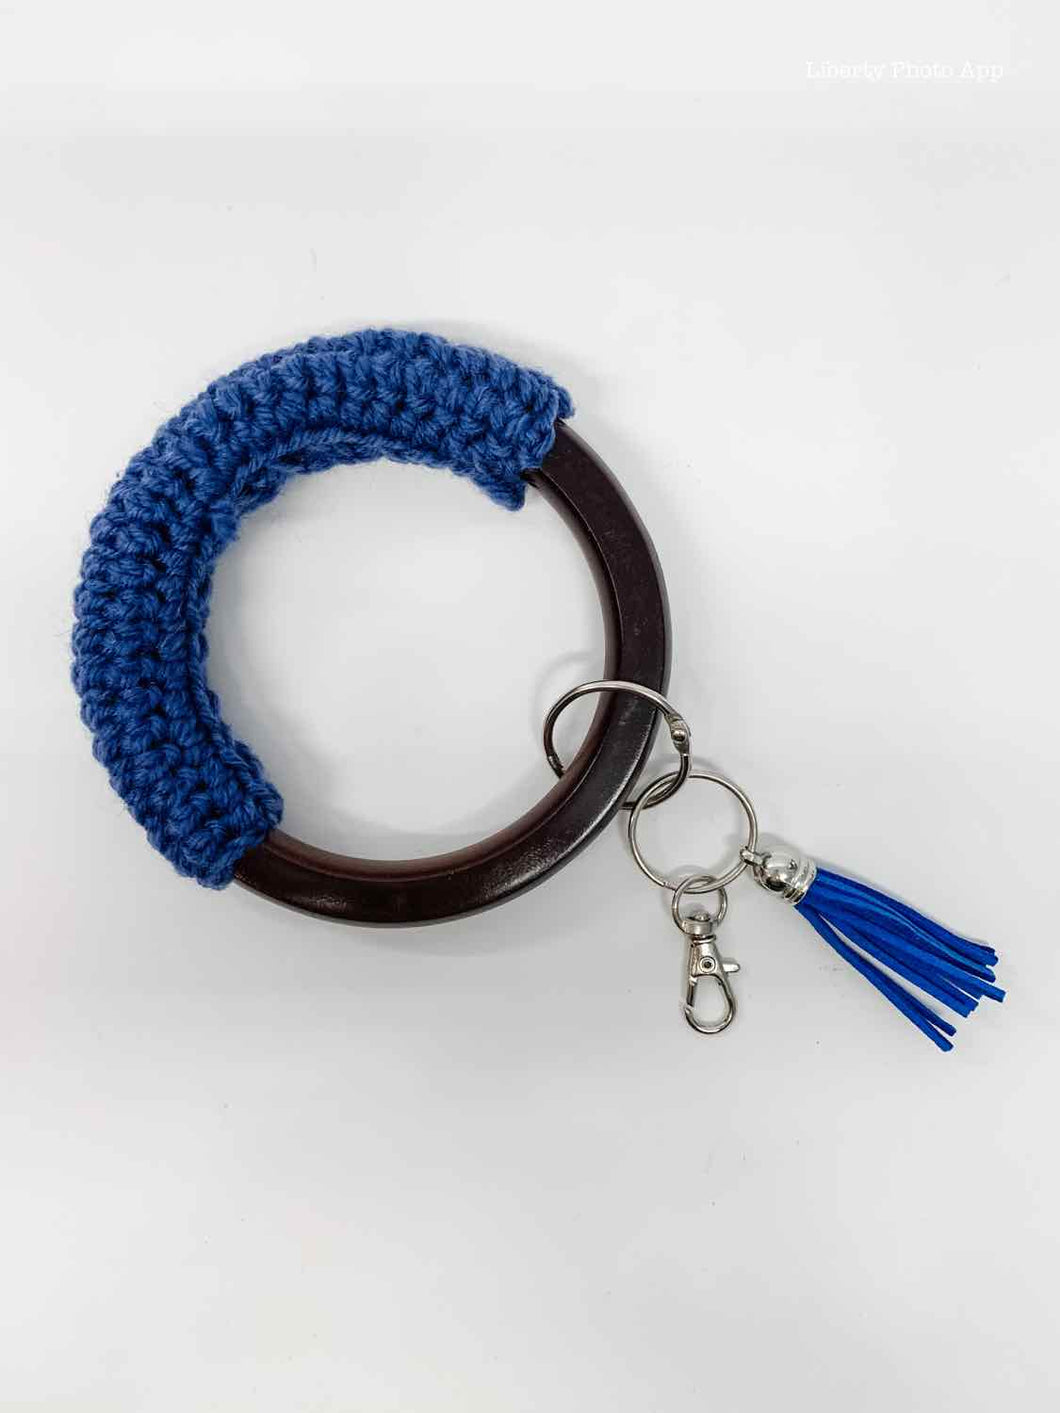 Key Chain Bangle - Wood and Crochet - Navy Blue